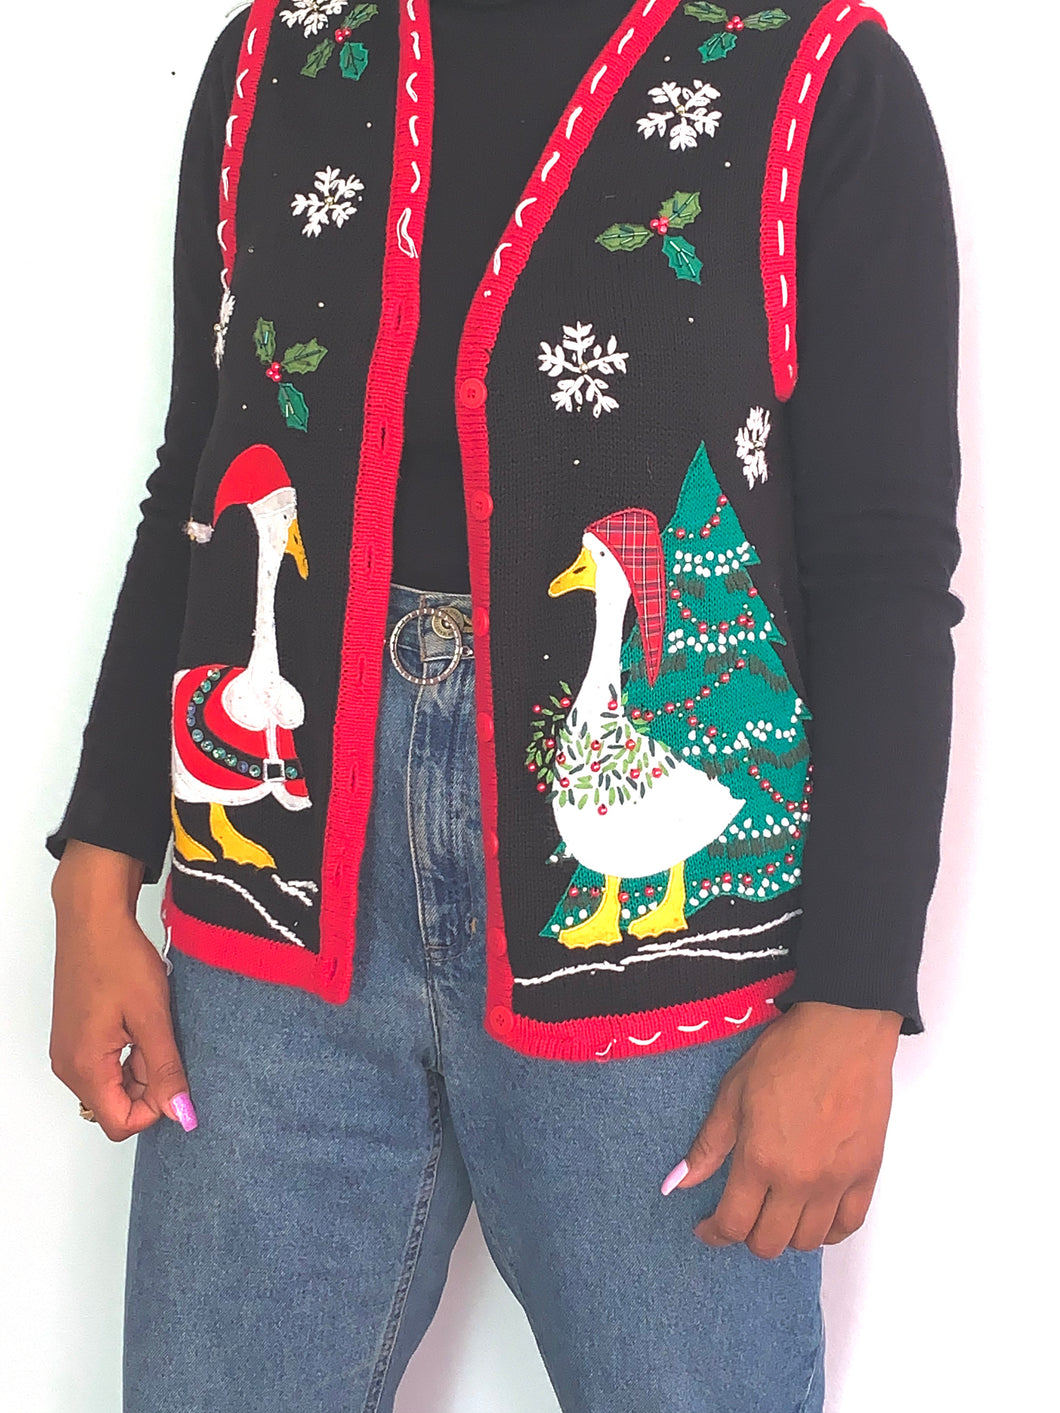 Vintage Christmas sweater vest